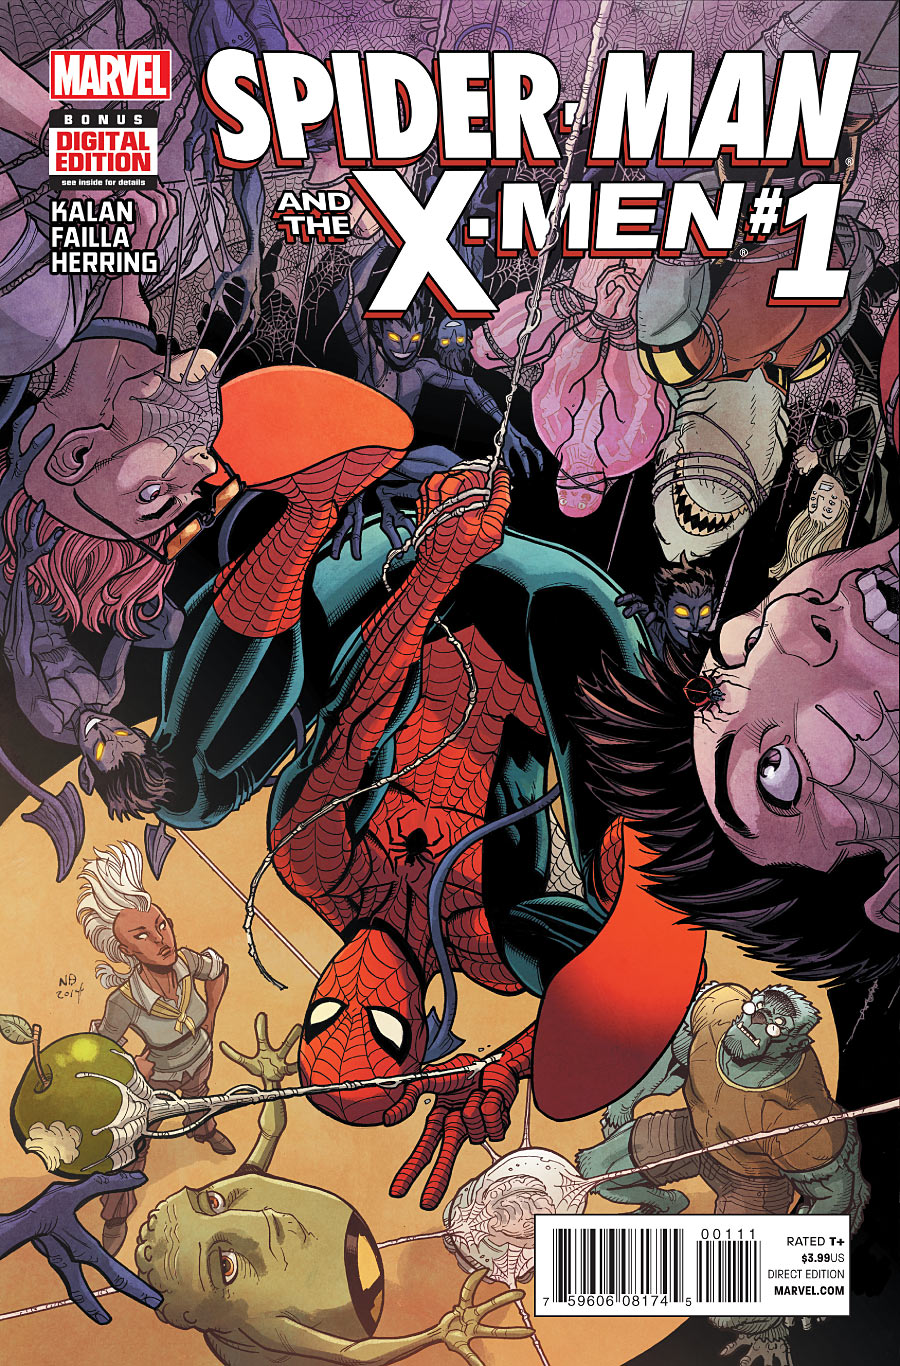 Spider-man and the X-Men vol.1